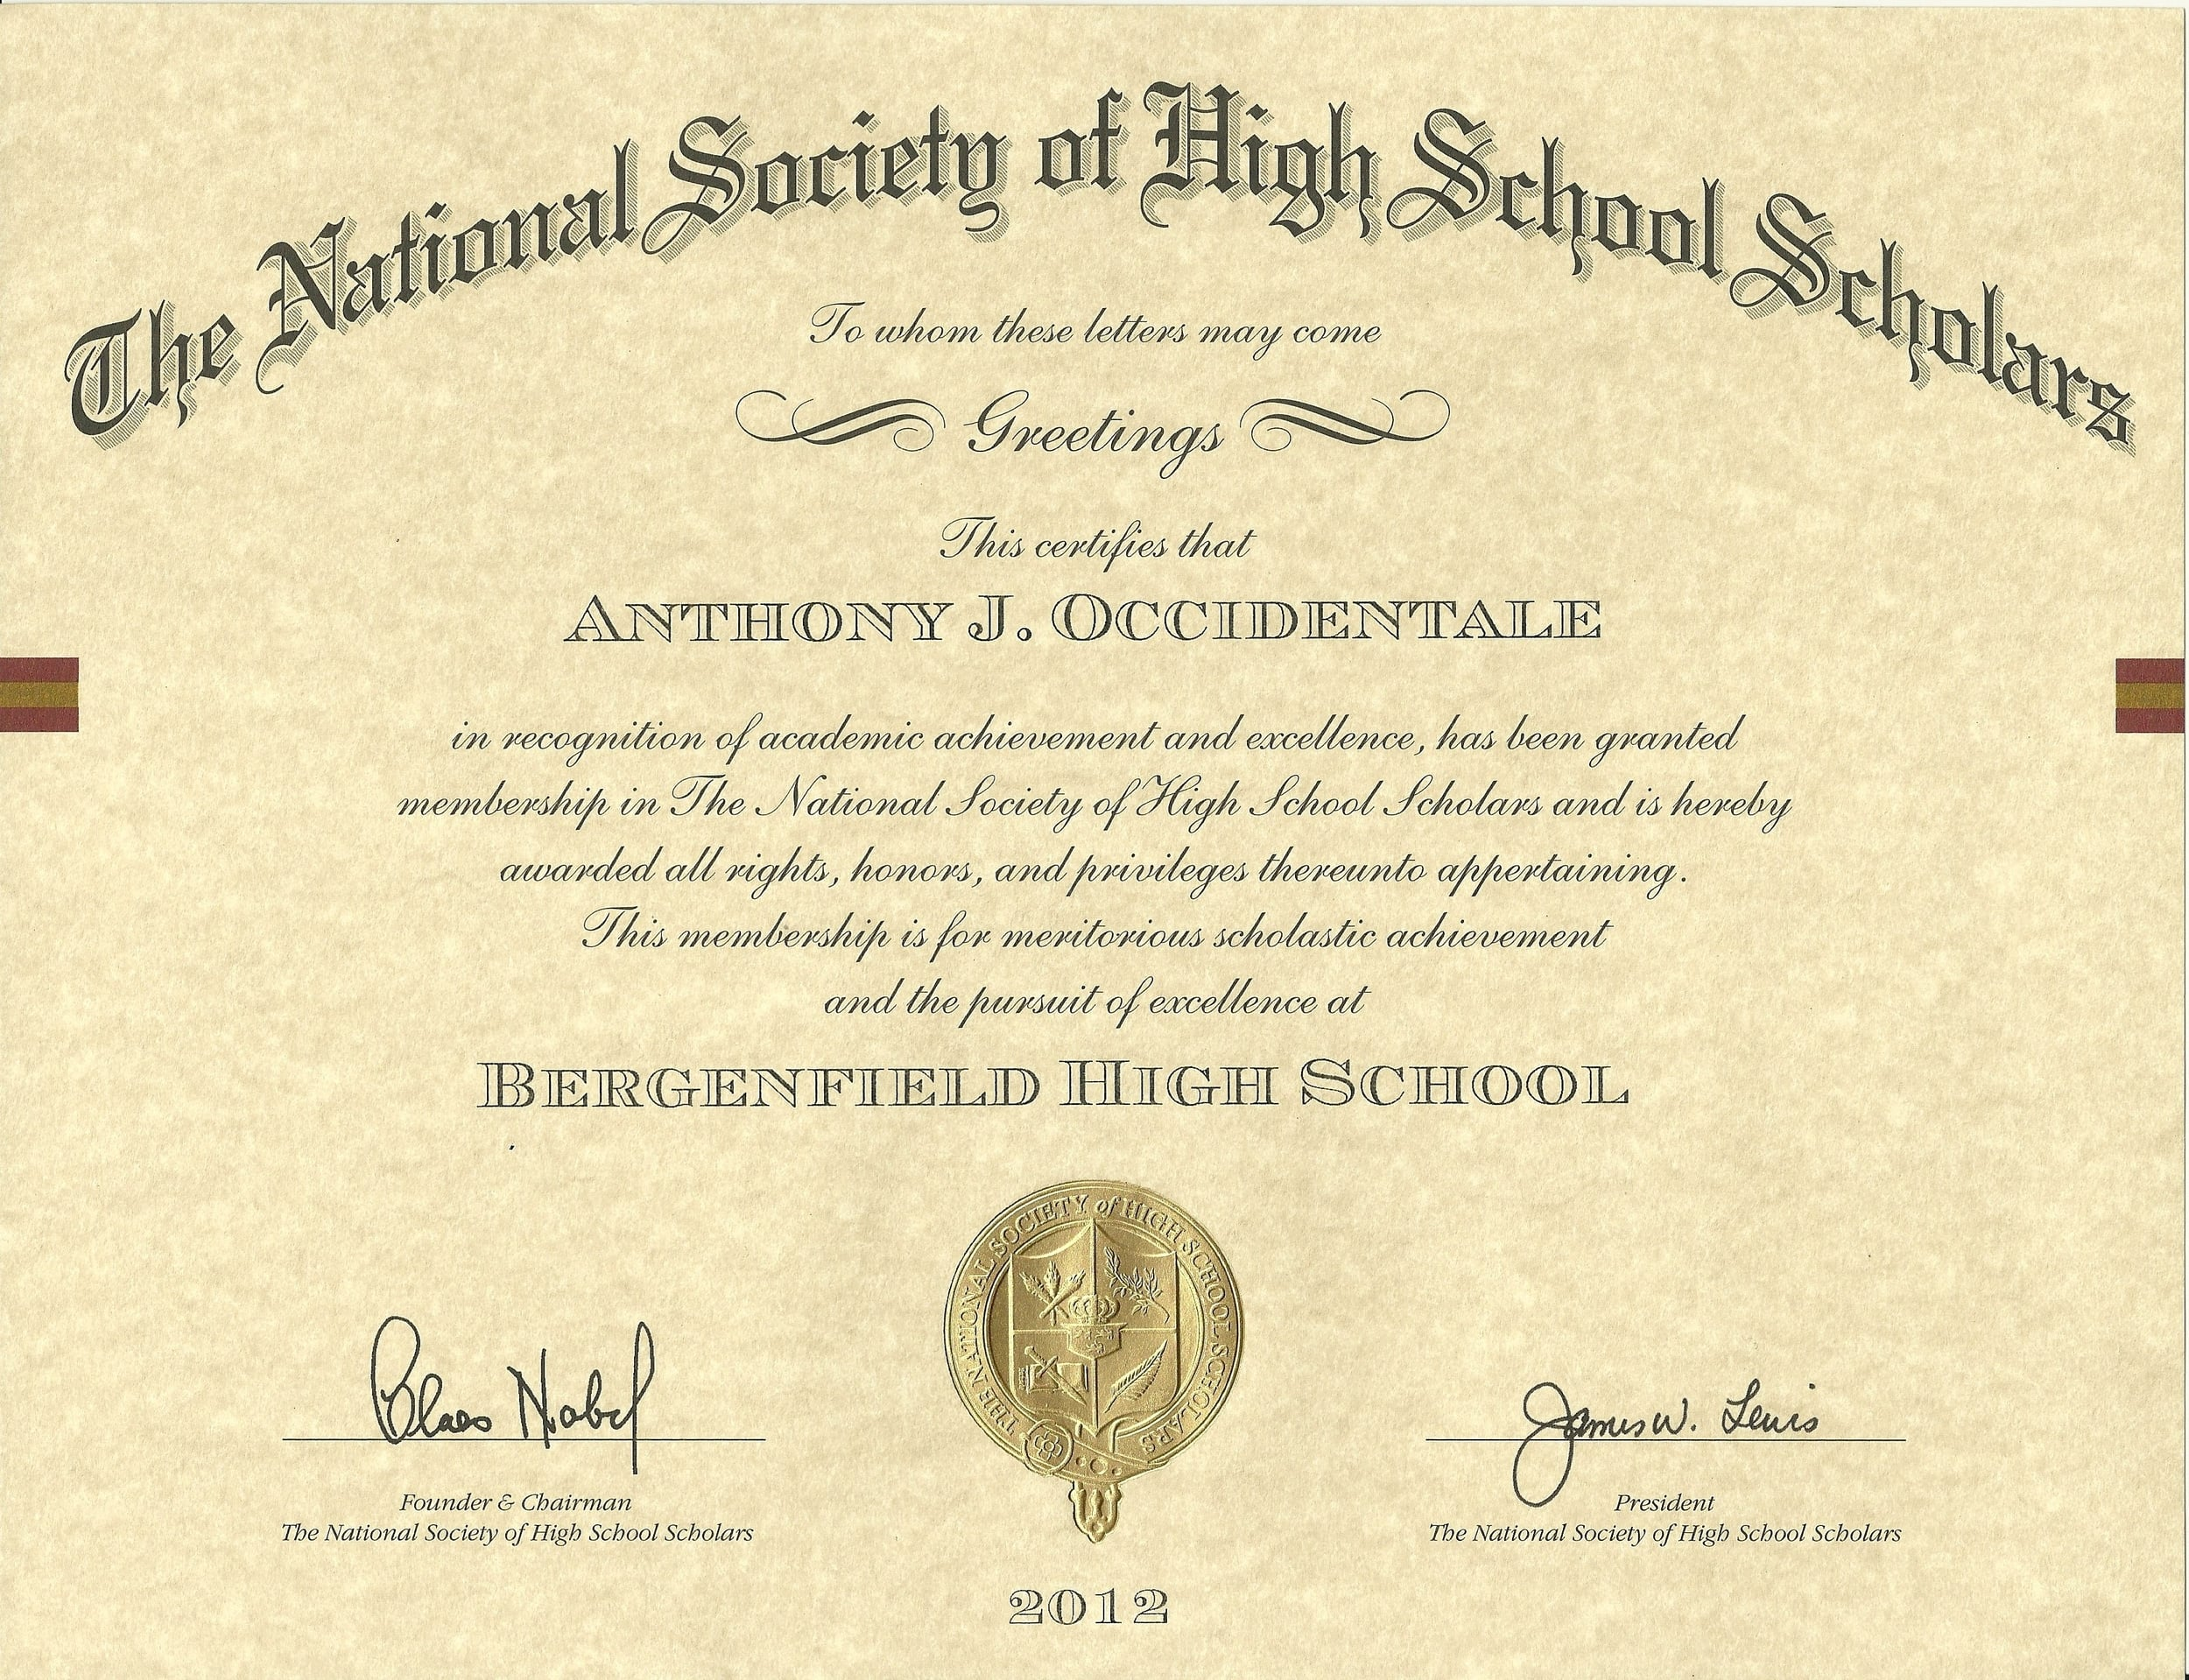 National Society of High School Scholars